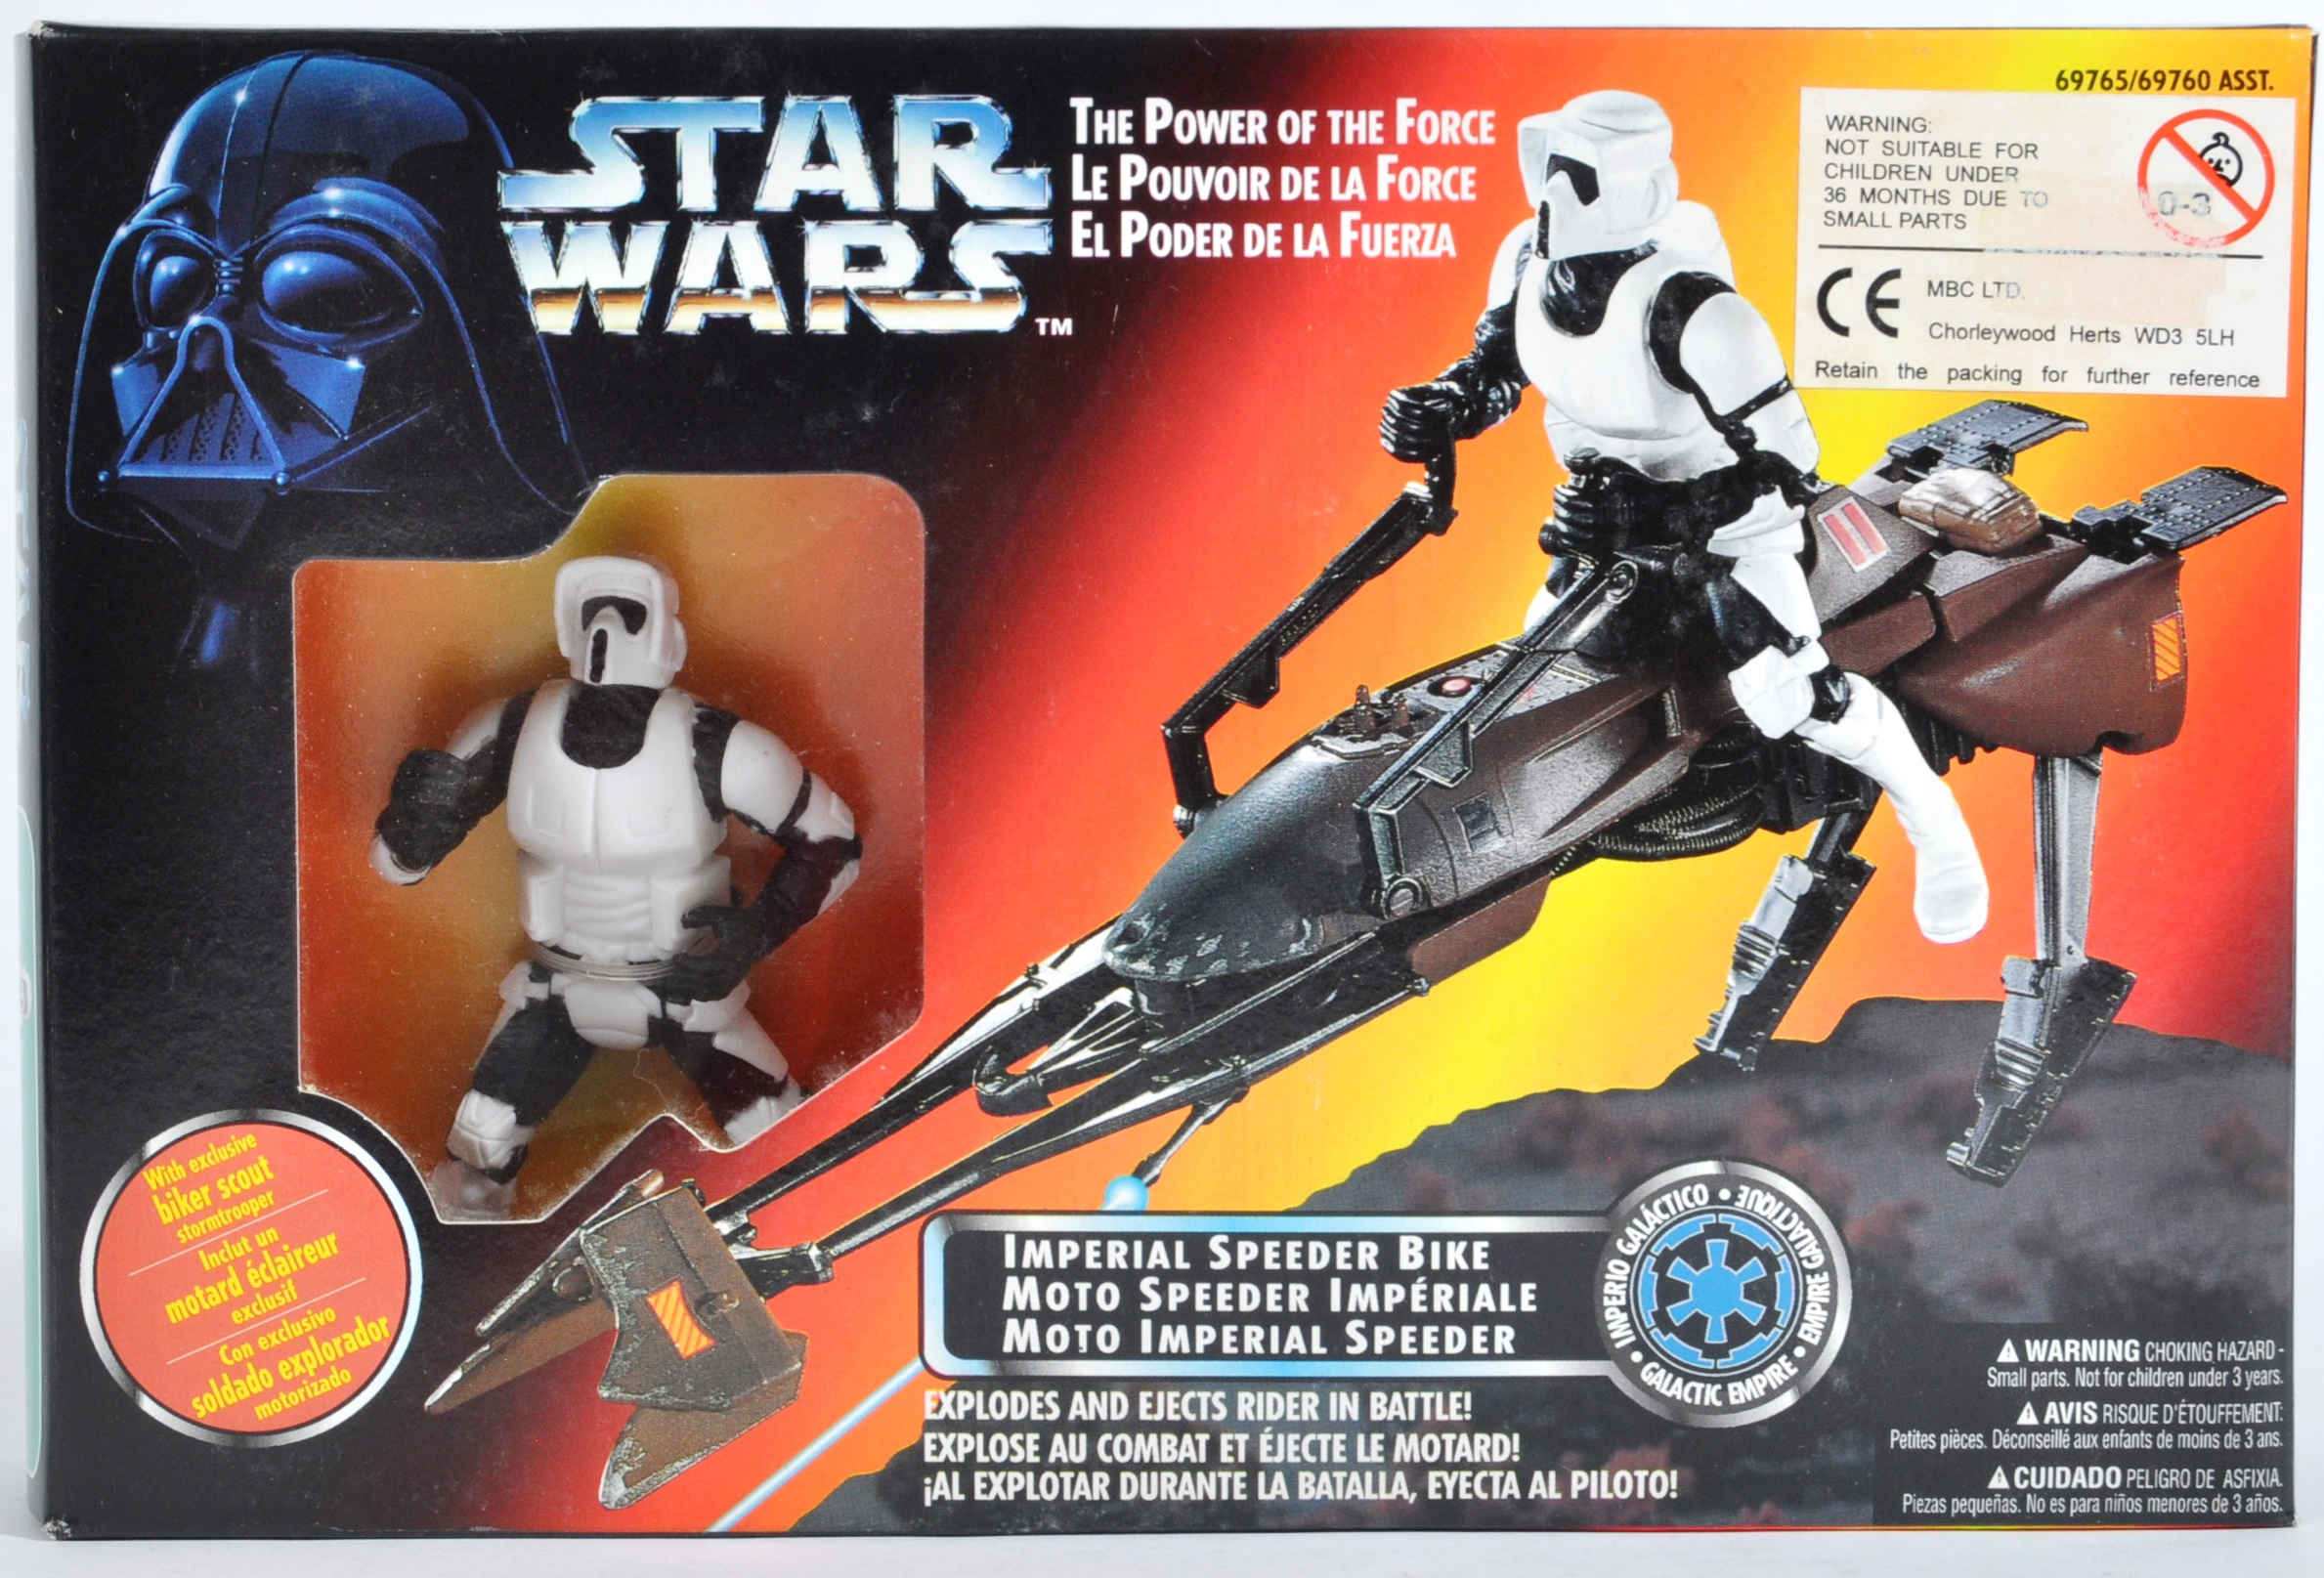 STAR WARS - COLLECTION OF KENNER POWER OF THE FORCES - Image 10 of 13